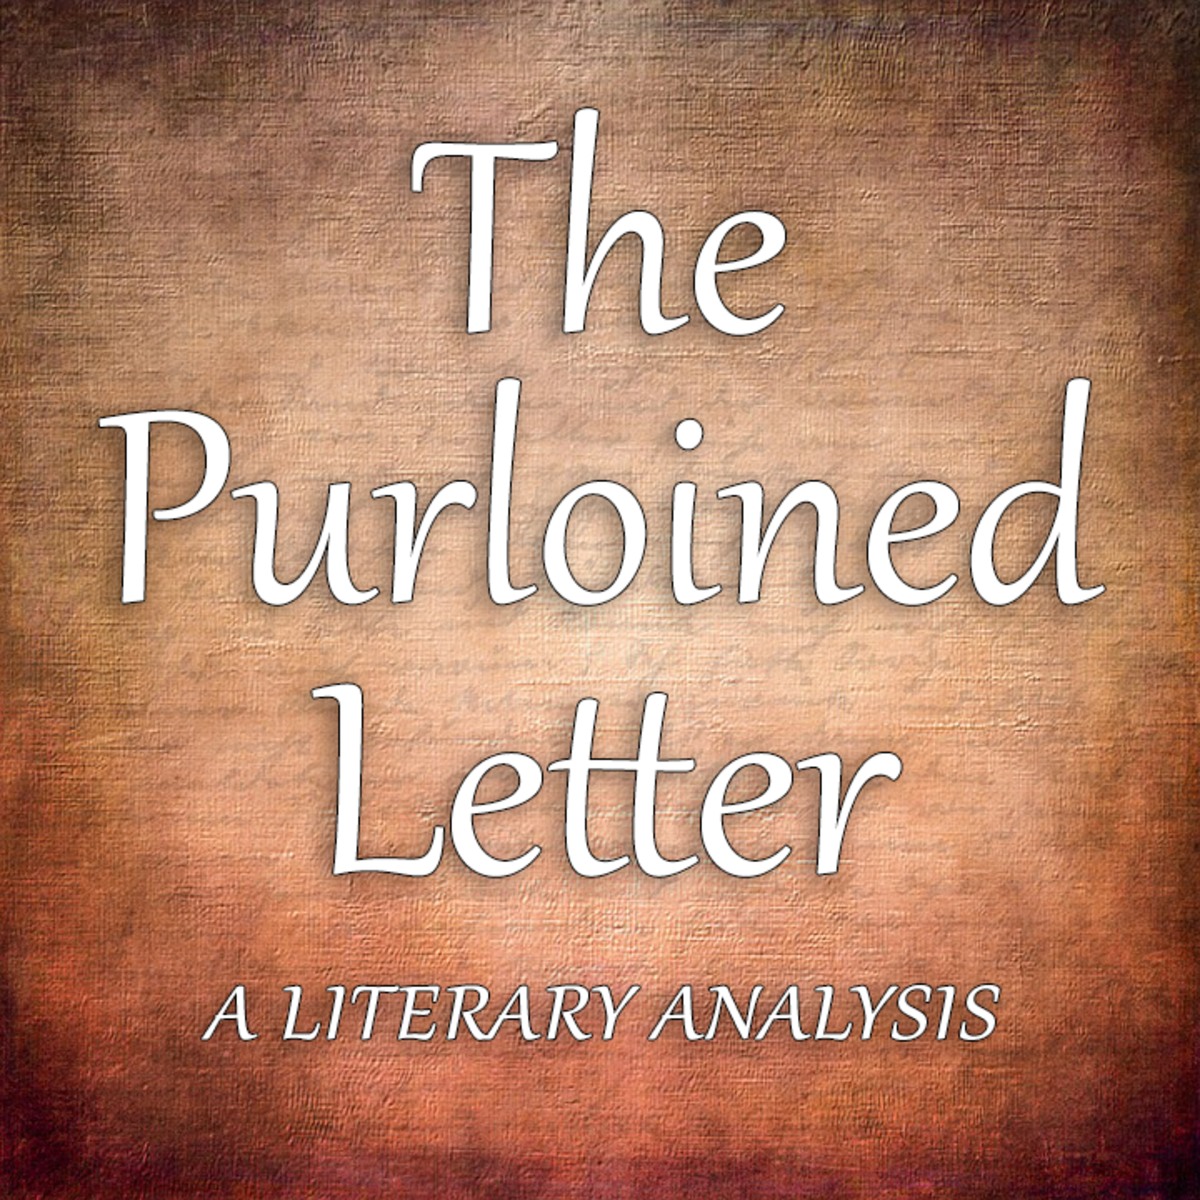 "An Analysis of Edgar Allan Poe's ""The Purloined Letter"" From Five Different Literary Perspectives"